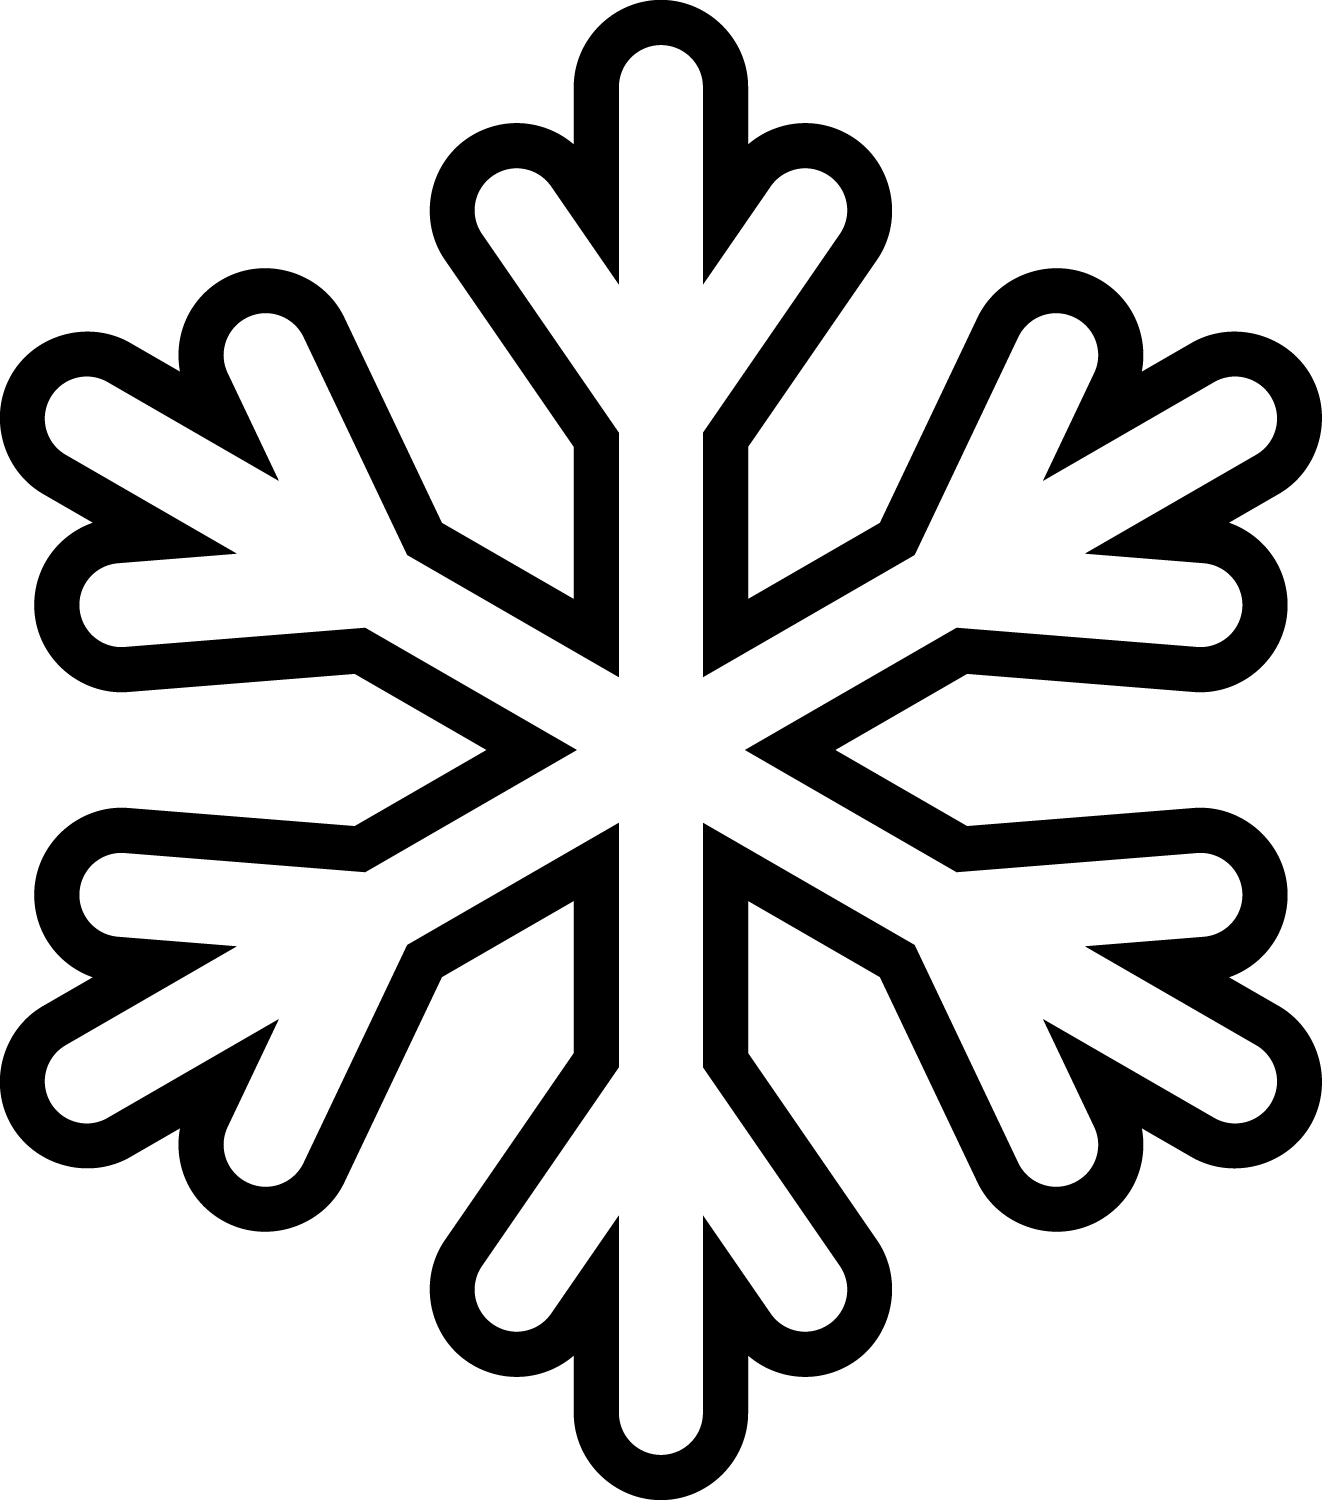 Snowflake clipart black and white disney frozen png free library snowflake-clipart-outline-xigKKLE5T.png.cf.png (1322×1500) | Diy ... png free library